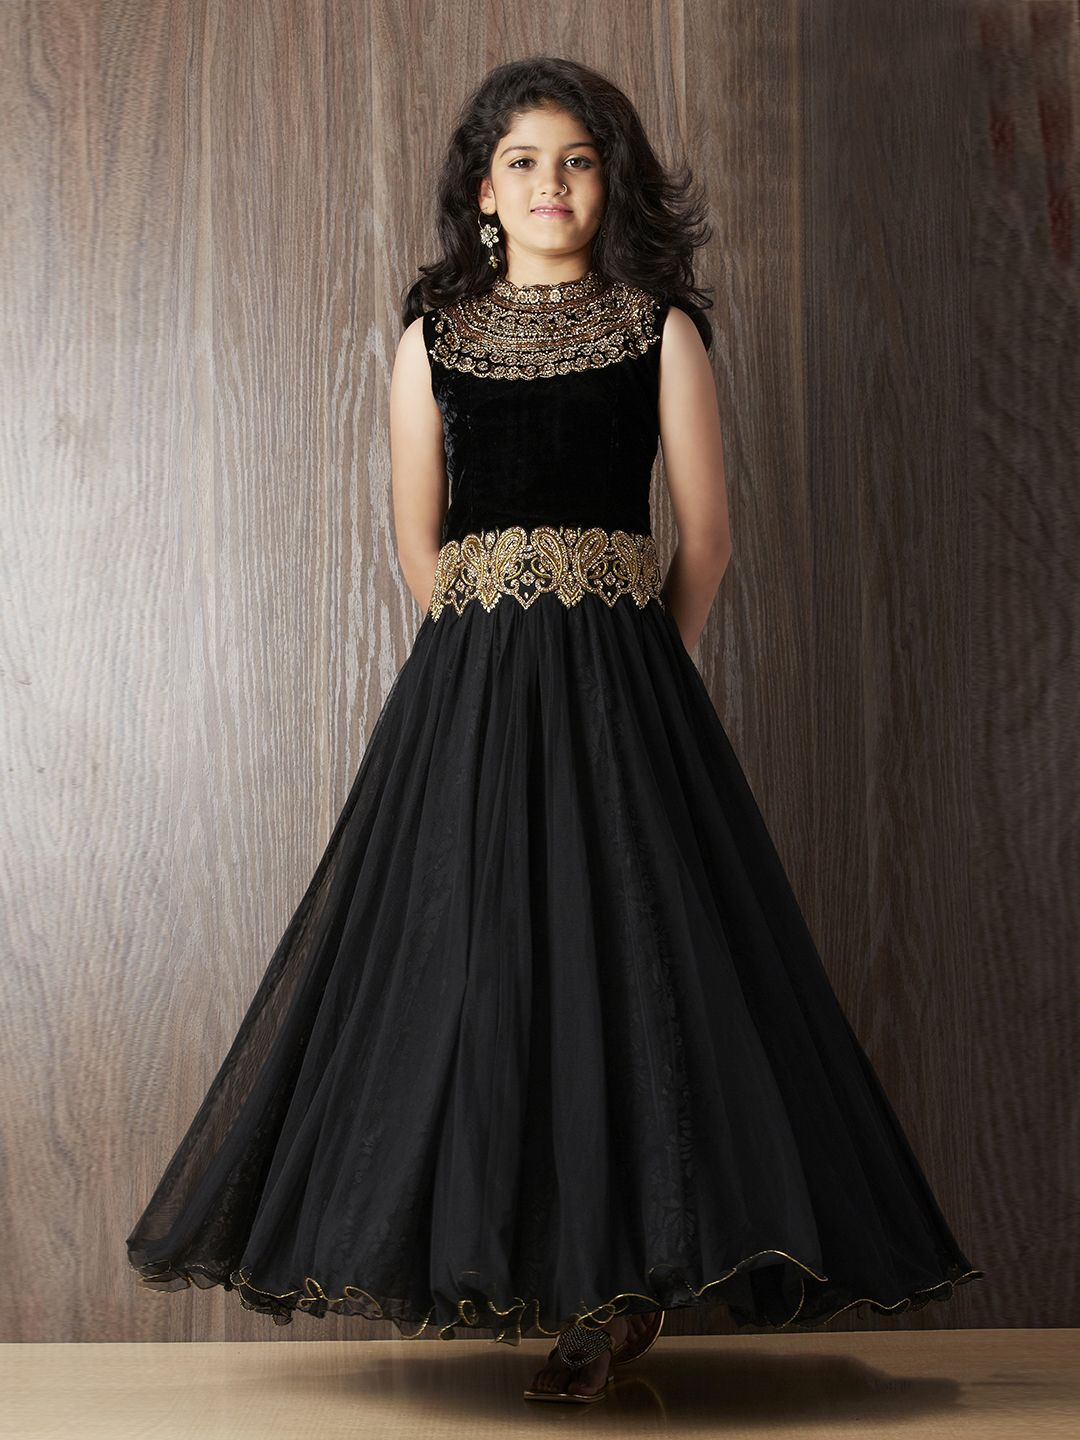 77738805160f G3 Exclusive Black Velvet Net Party Wear Girls Gown | v | Kids gown ...